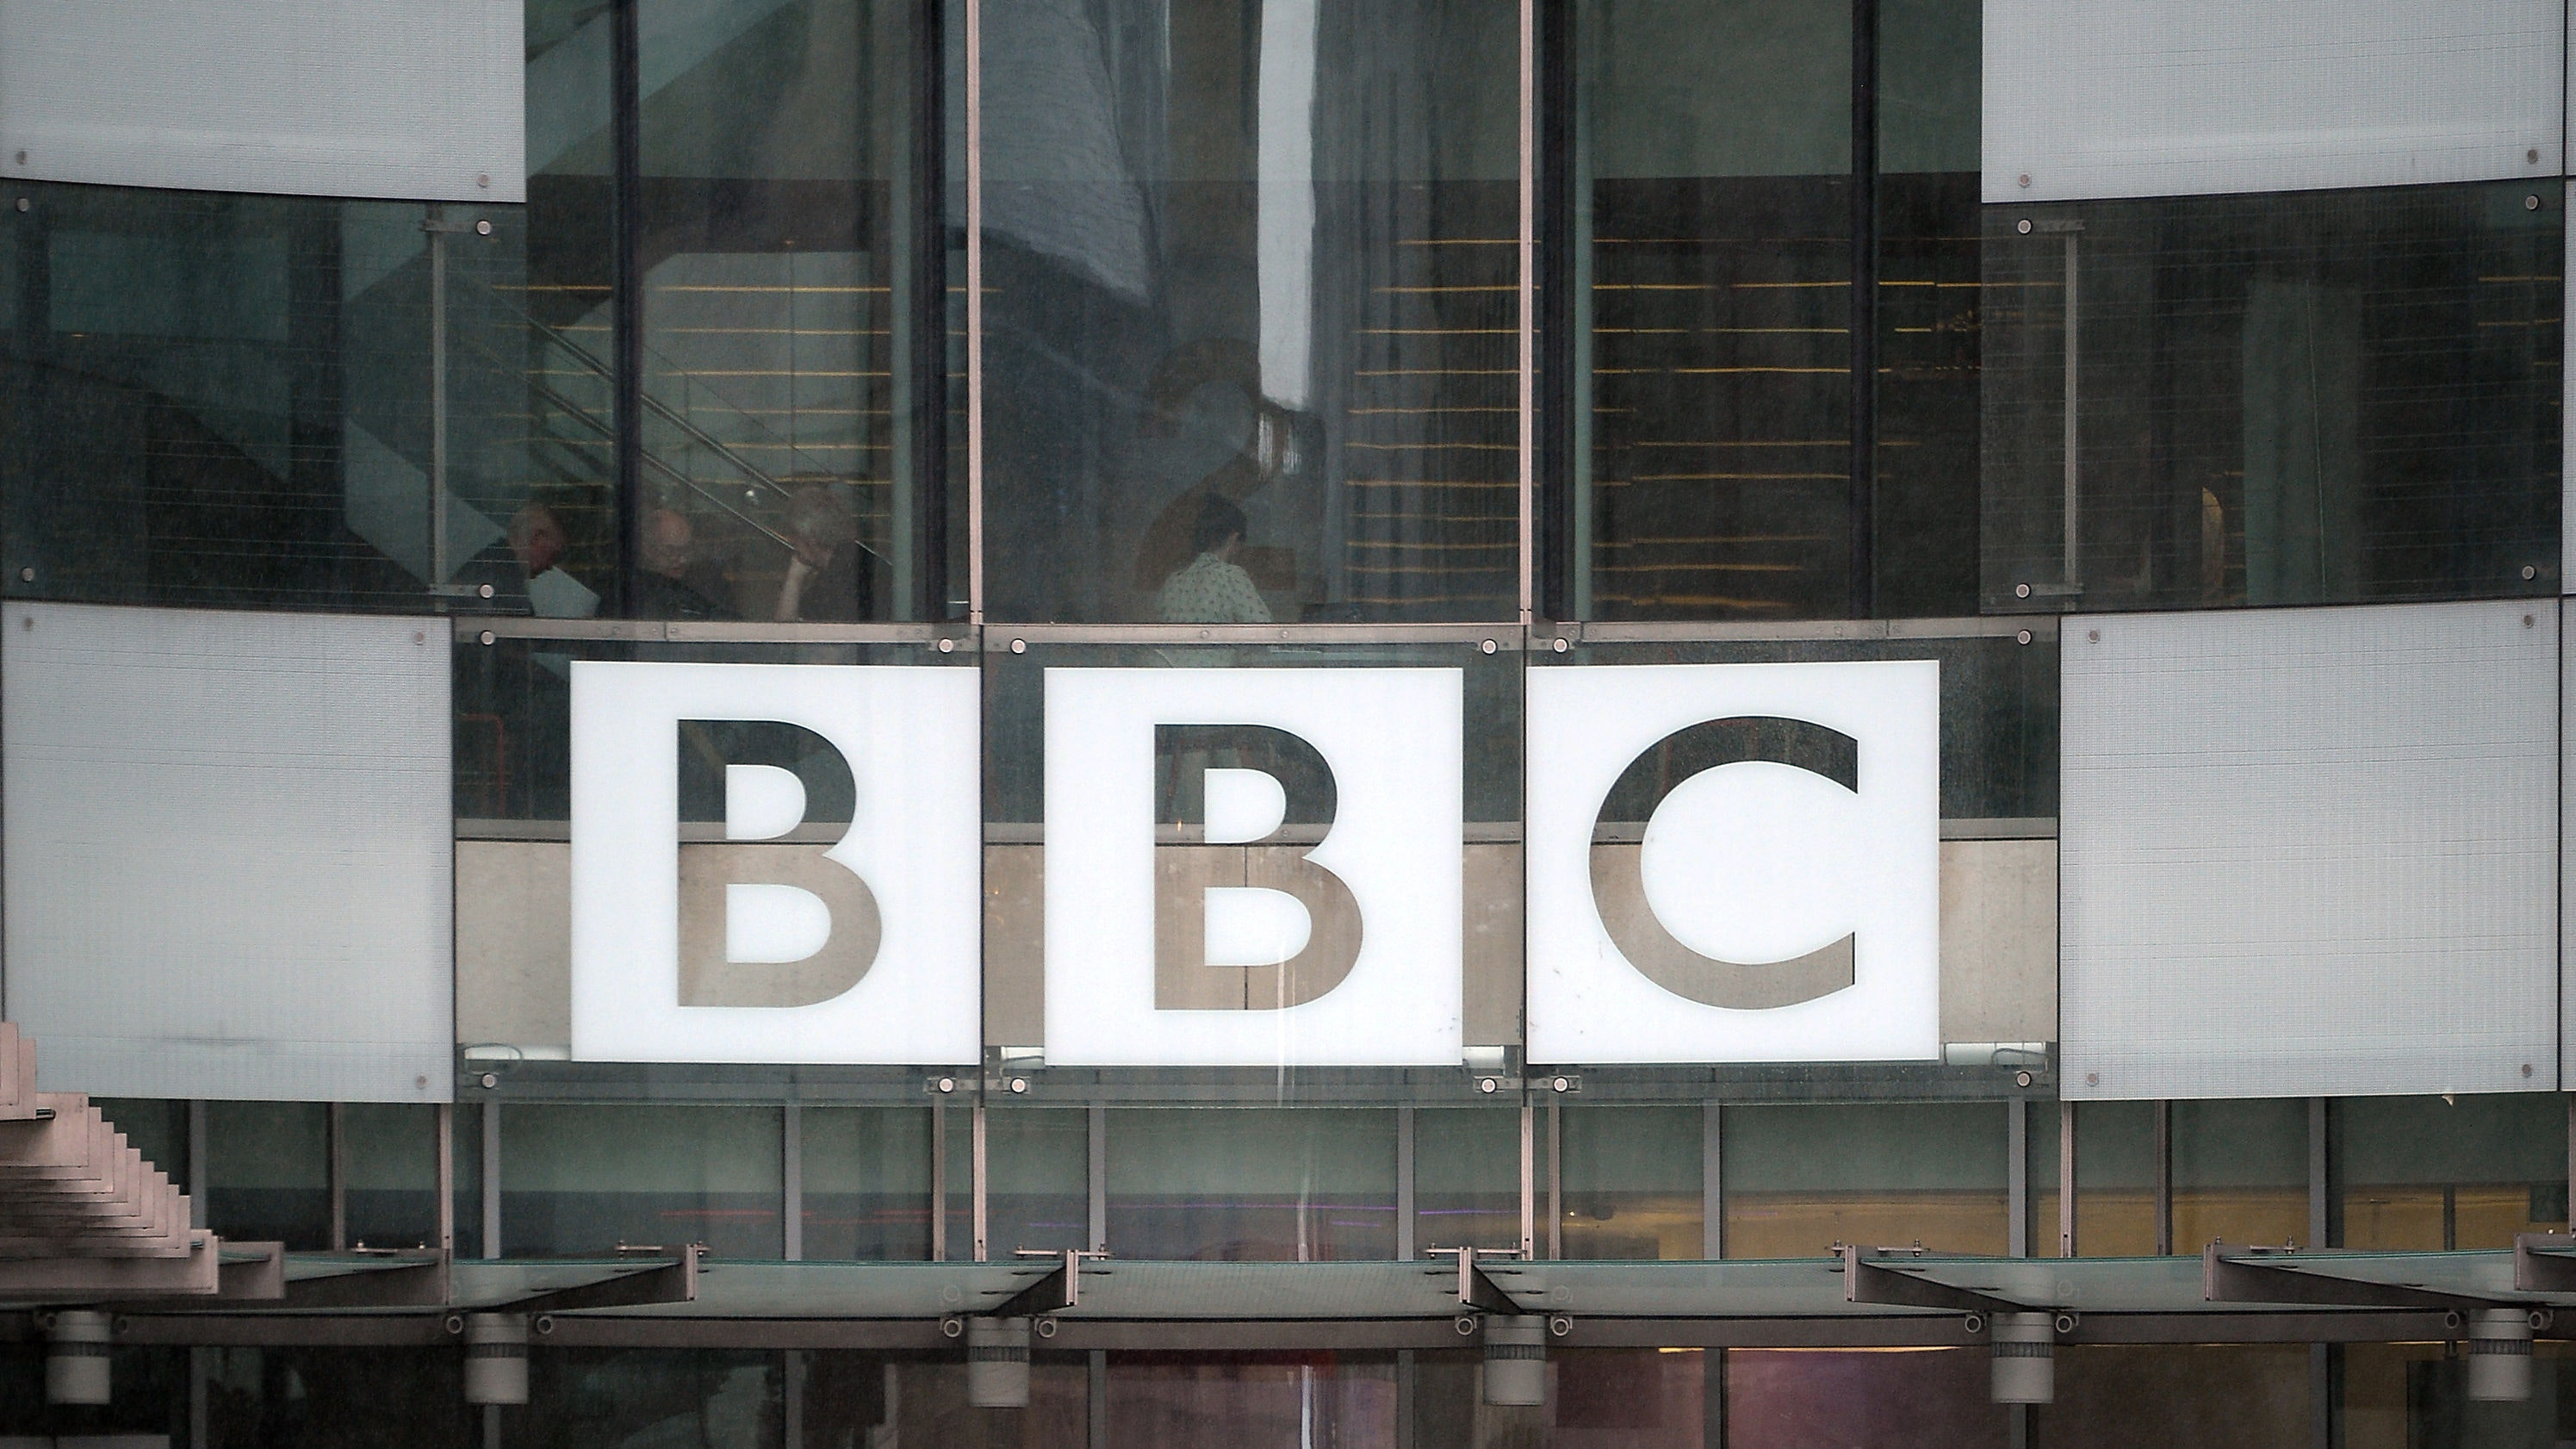 BBC proposes drastic new pay framework, despite 'no evidence of gender bias'